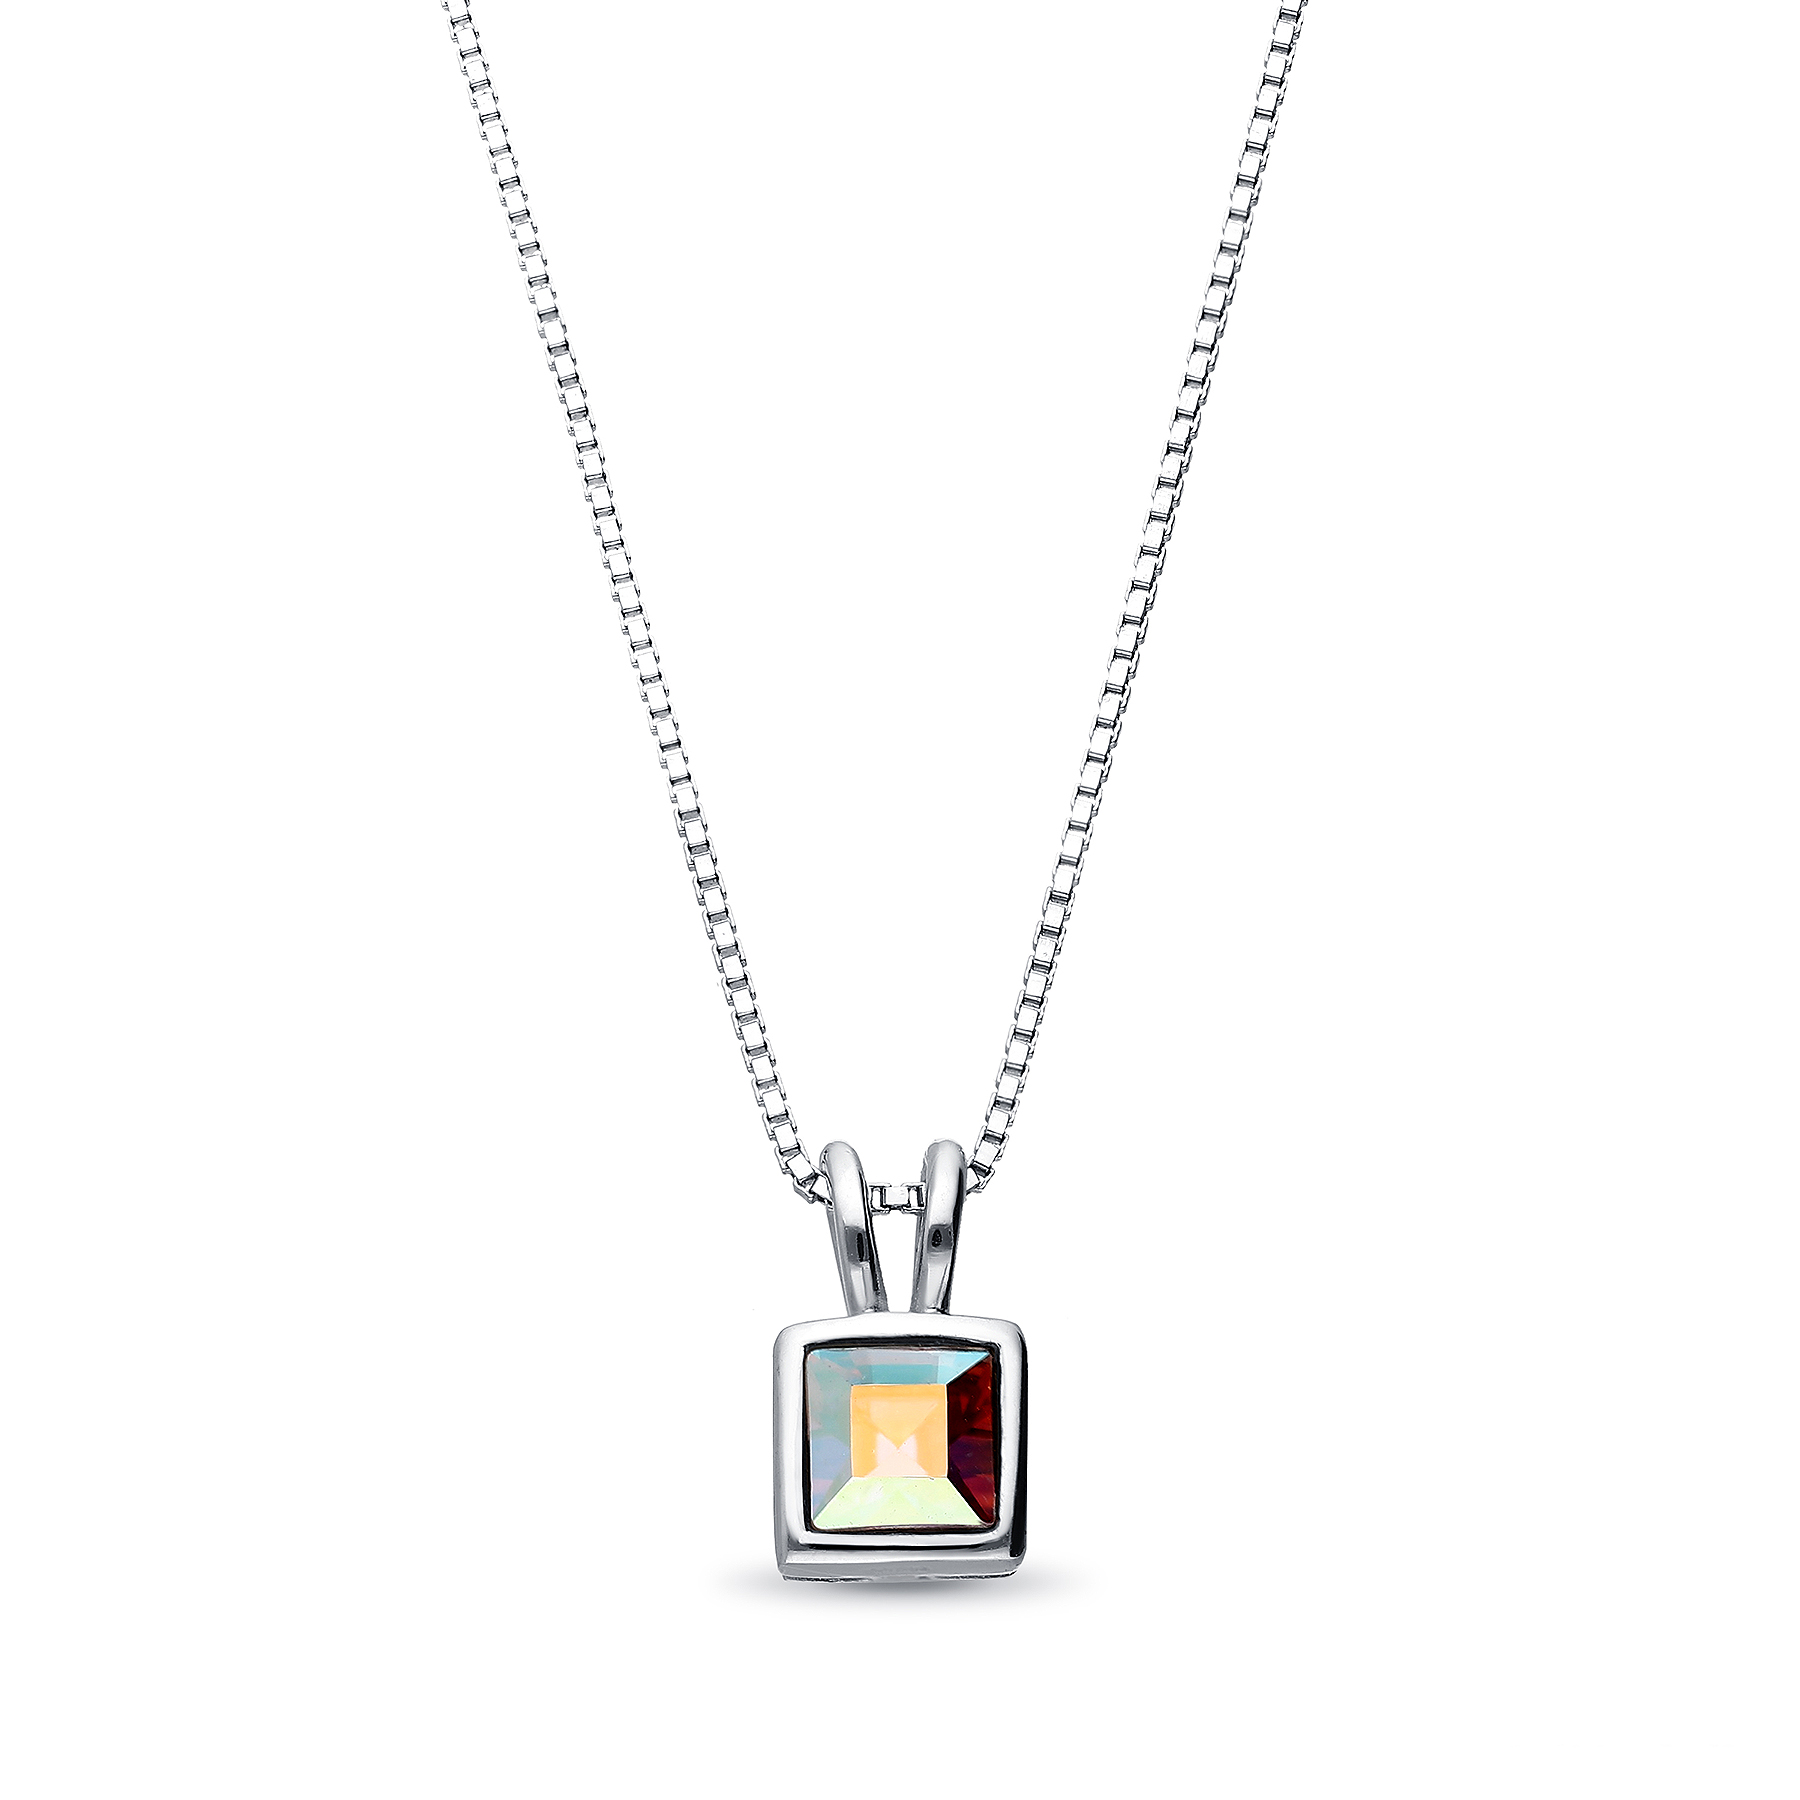 1583-179 - Sparkle by 7K - 925 Sterling Silver Necklace Decorated With Verifiable Authentic Swarovski Crystal